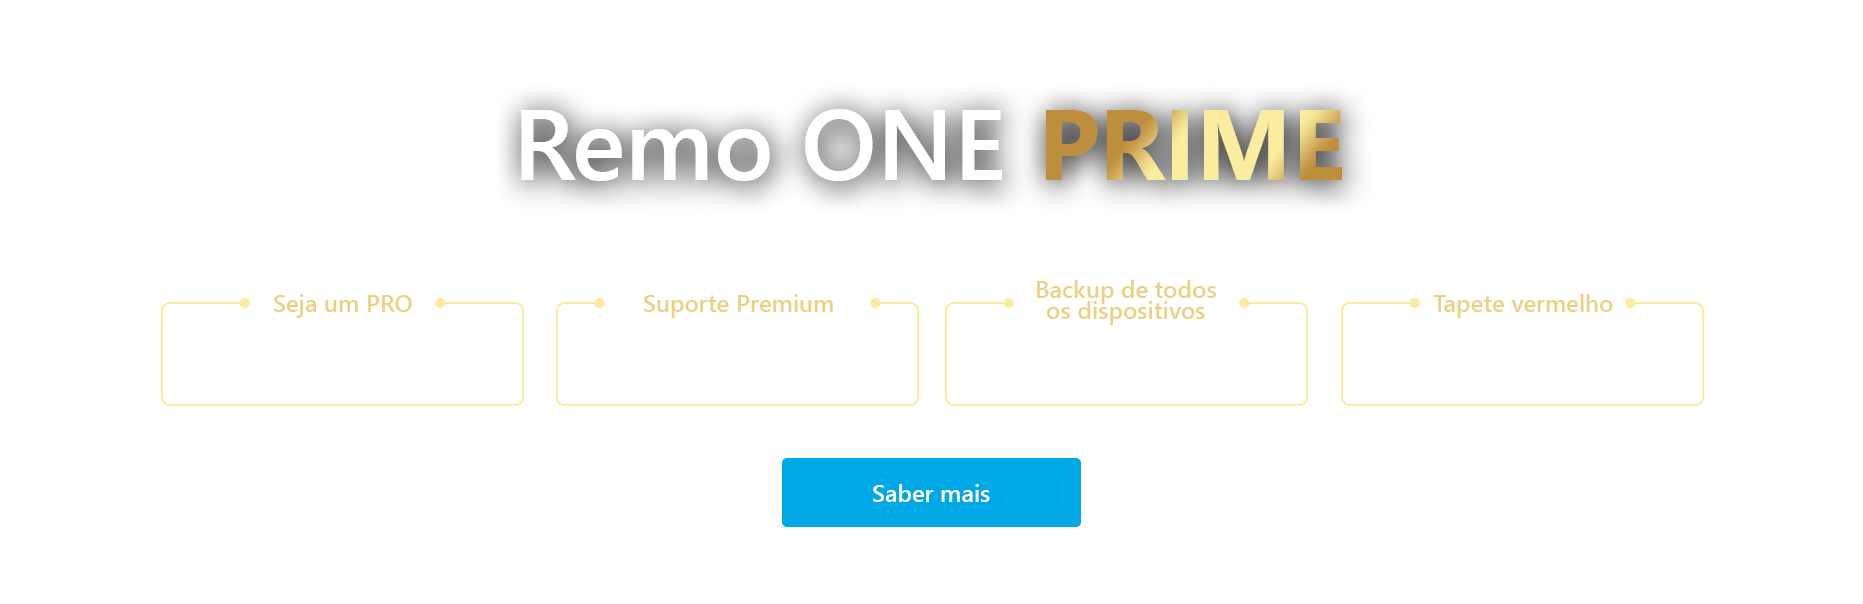 Remo ONE